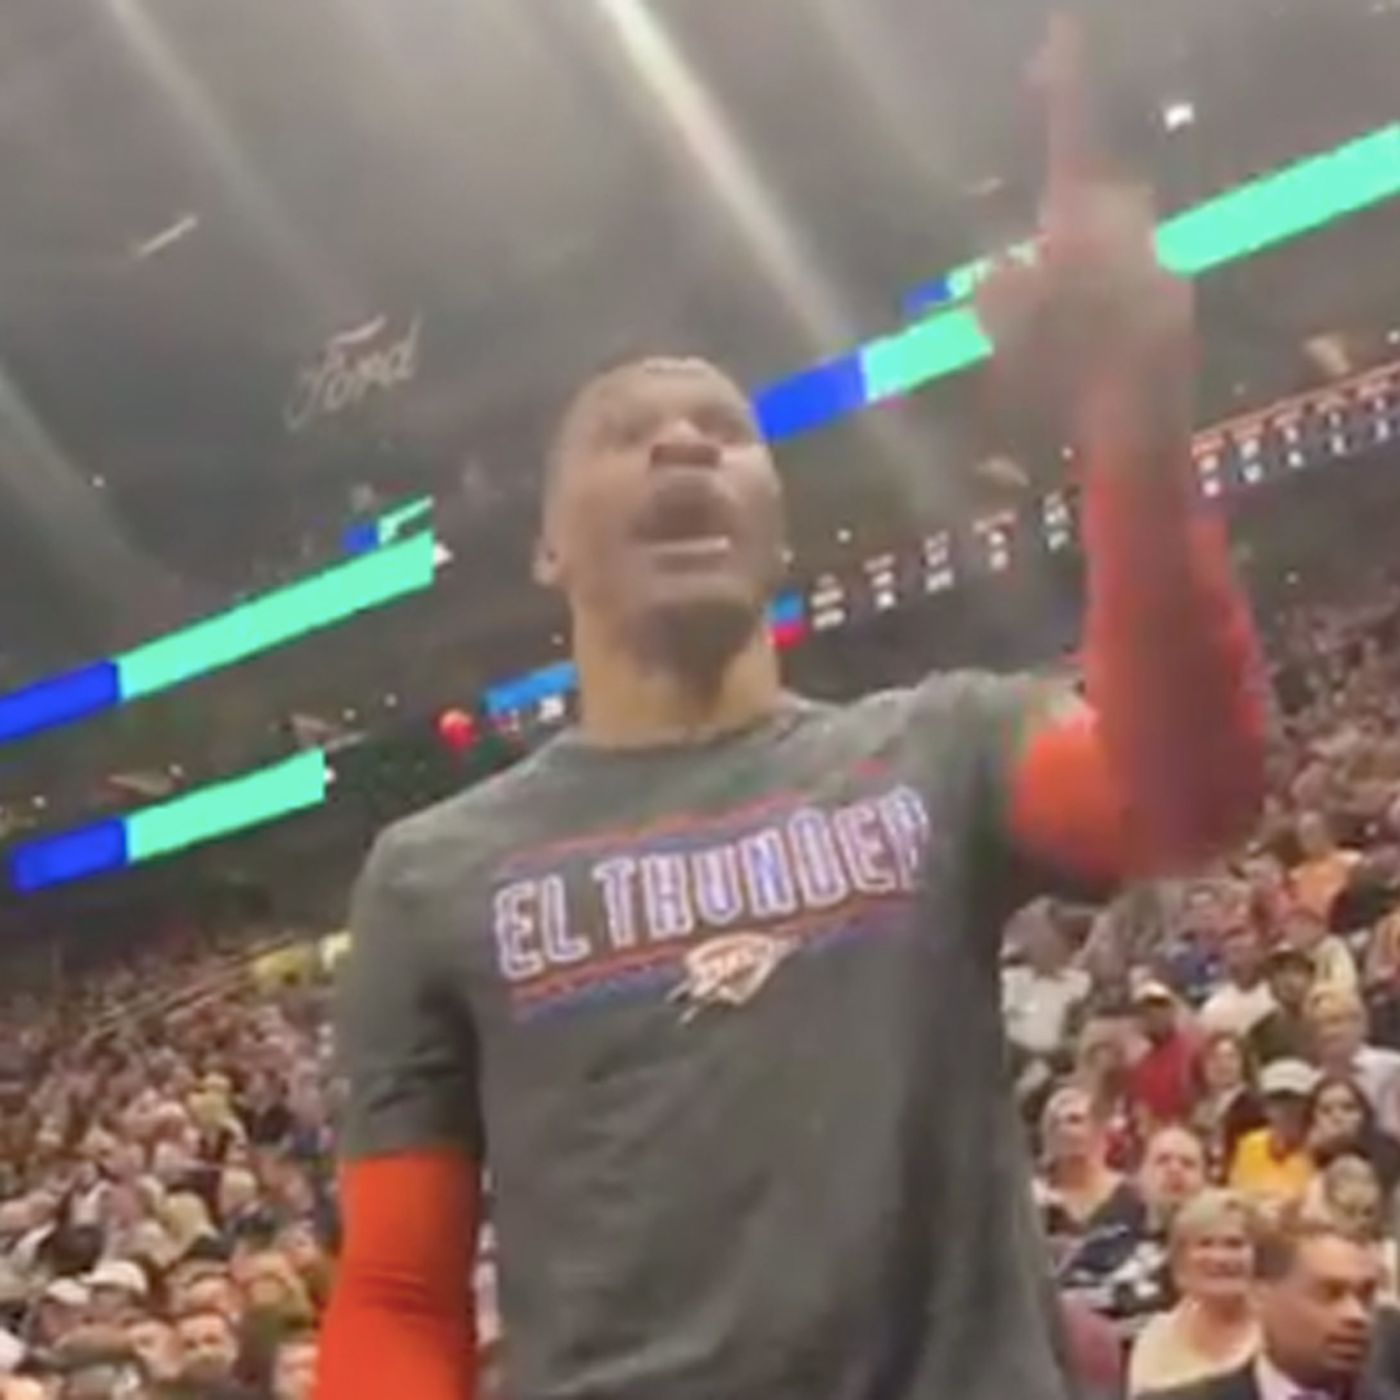 1209b5a39 Video shows Russell Westbrook telling a Jazz fan he d  f ck you up.  Here s  the full story - SBNation.com